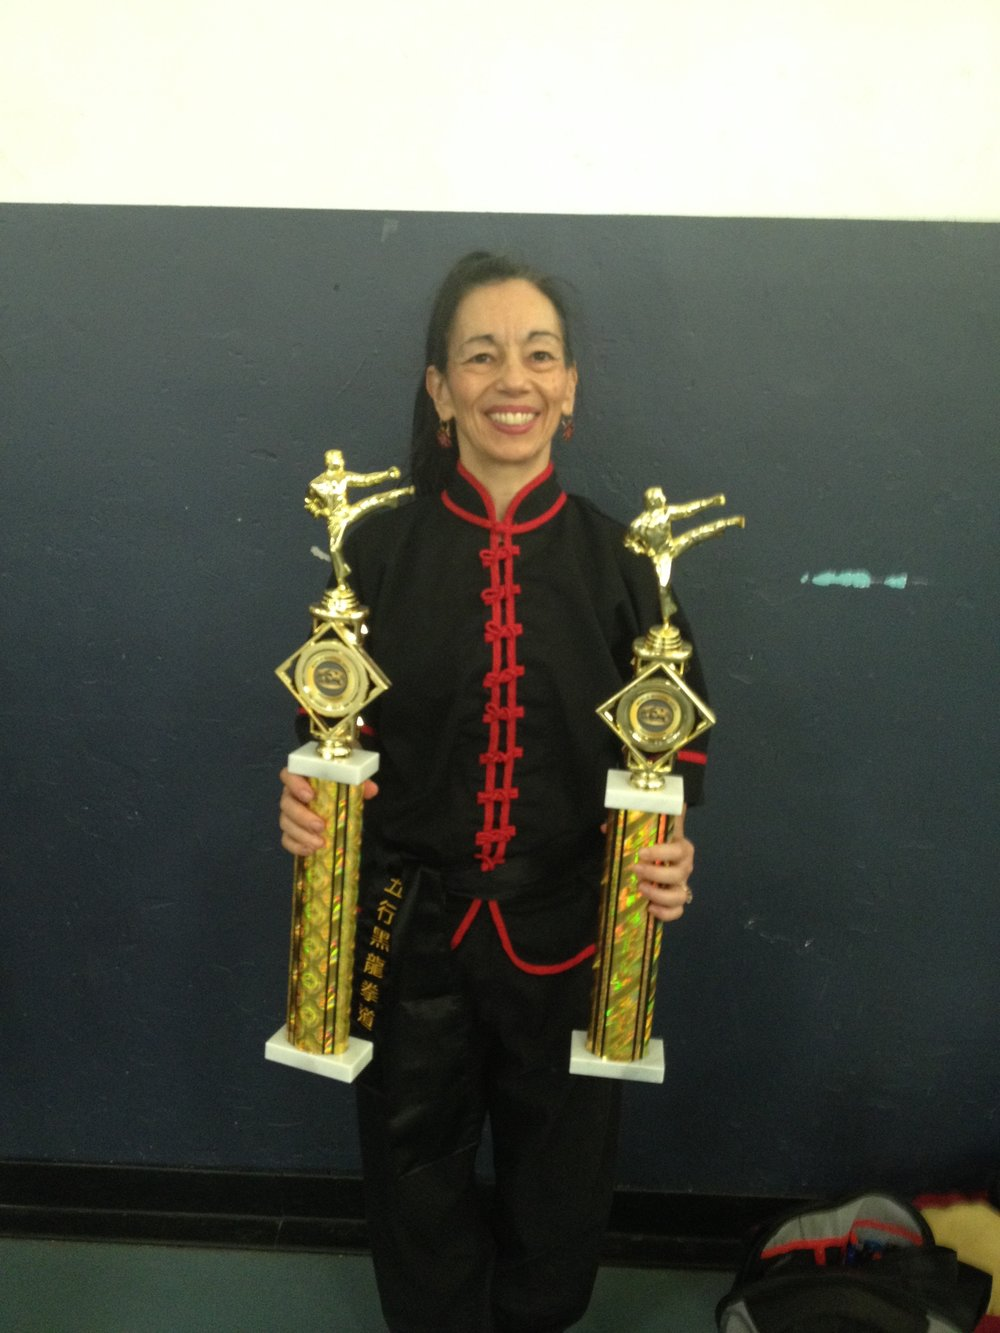 Sharon w. smaller trophies later replaced by approp. 2d place trophies for KF weapons and forms.jpg